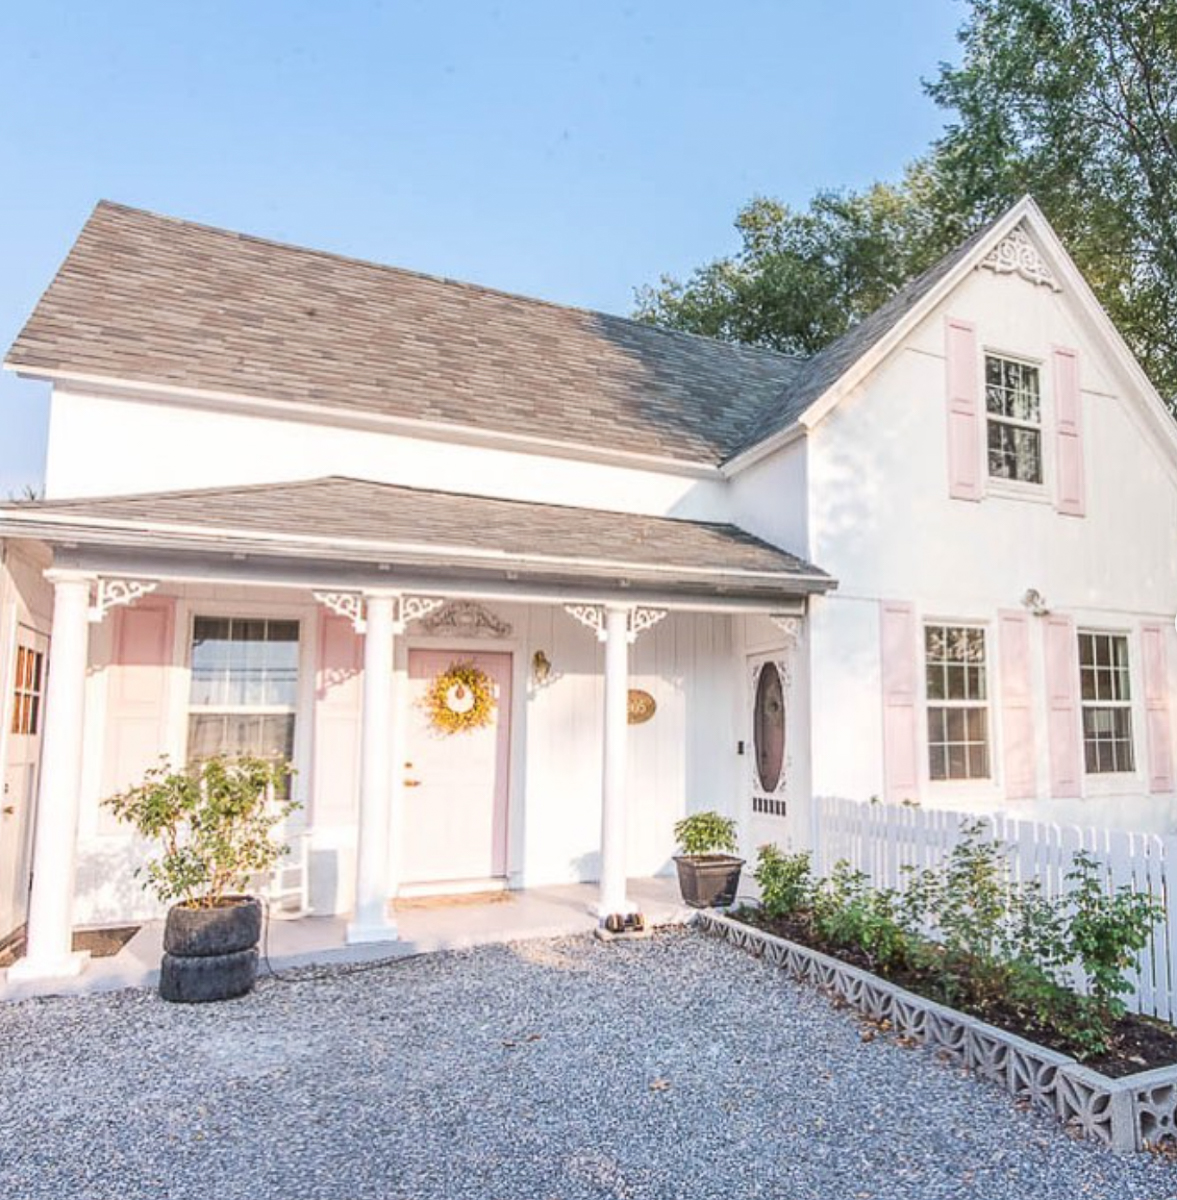 Tour this charming 1905 cottage straight out of a fairytale with pink shutters and door kellyelko.com